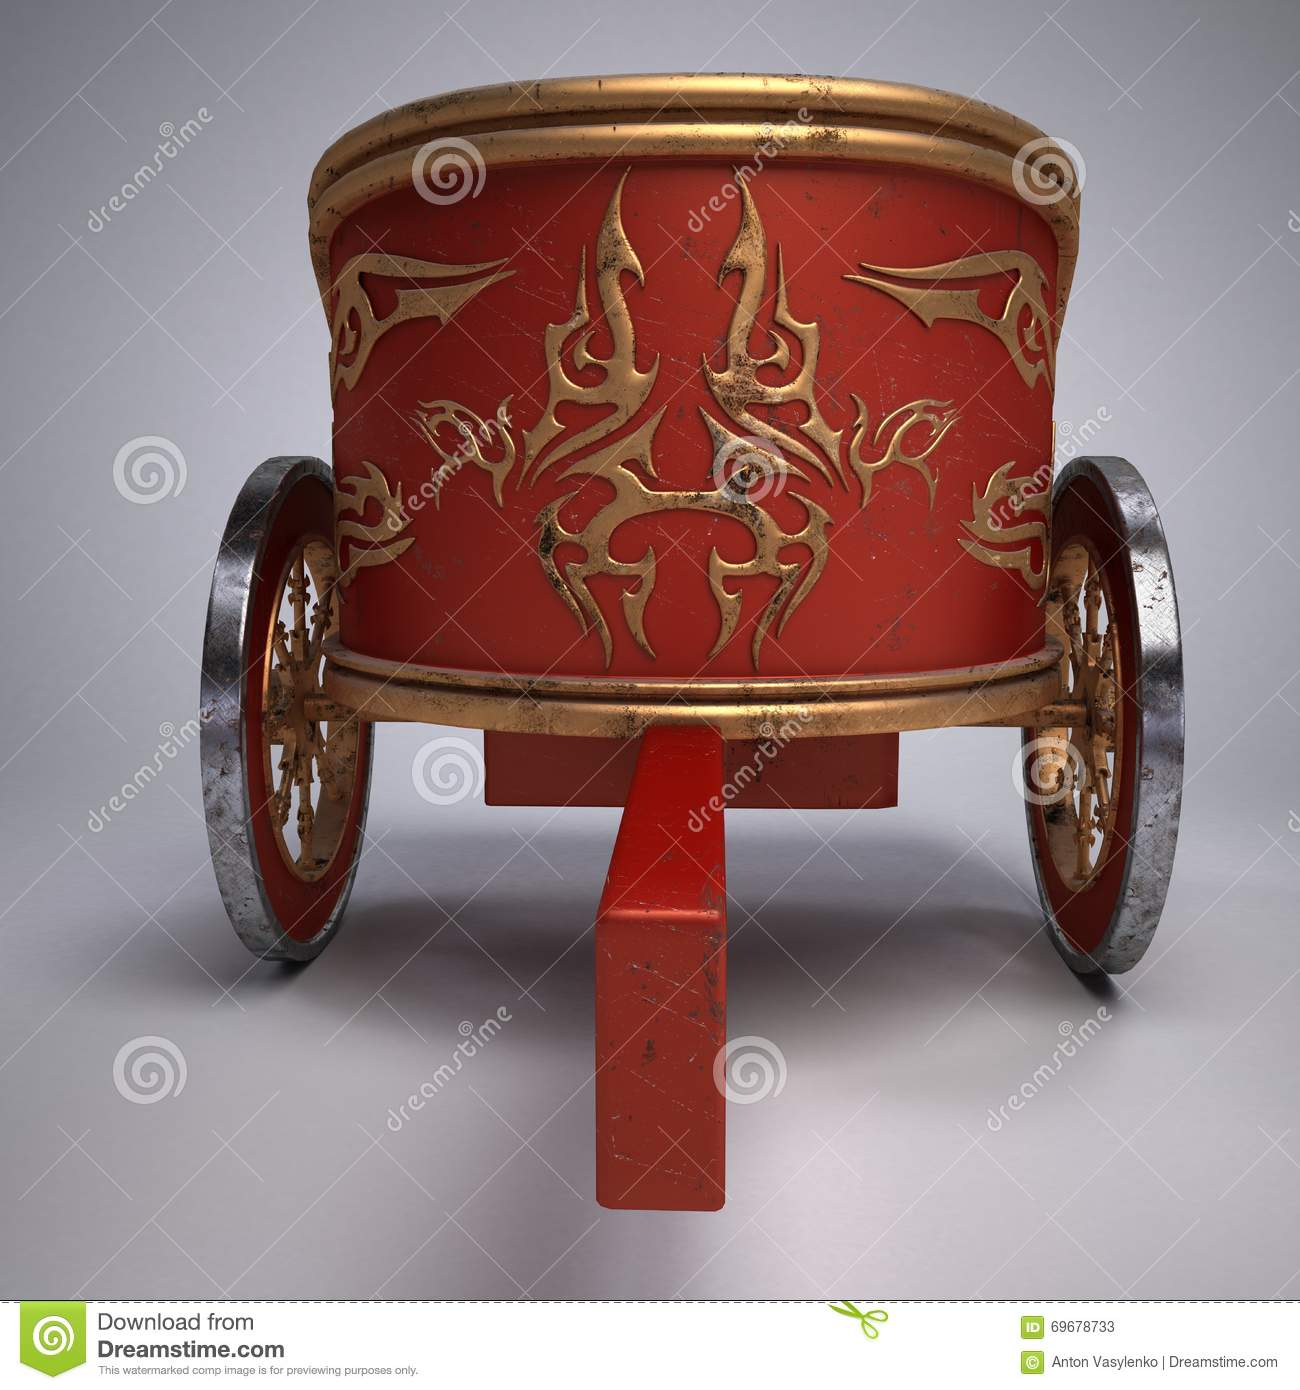 old scratched roman chariot on gradient white background. Black Bedroom Furniture Sets. Home Design Ideas